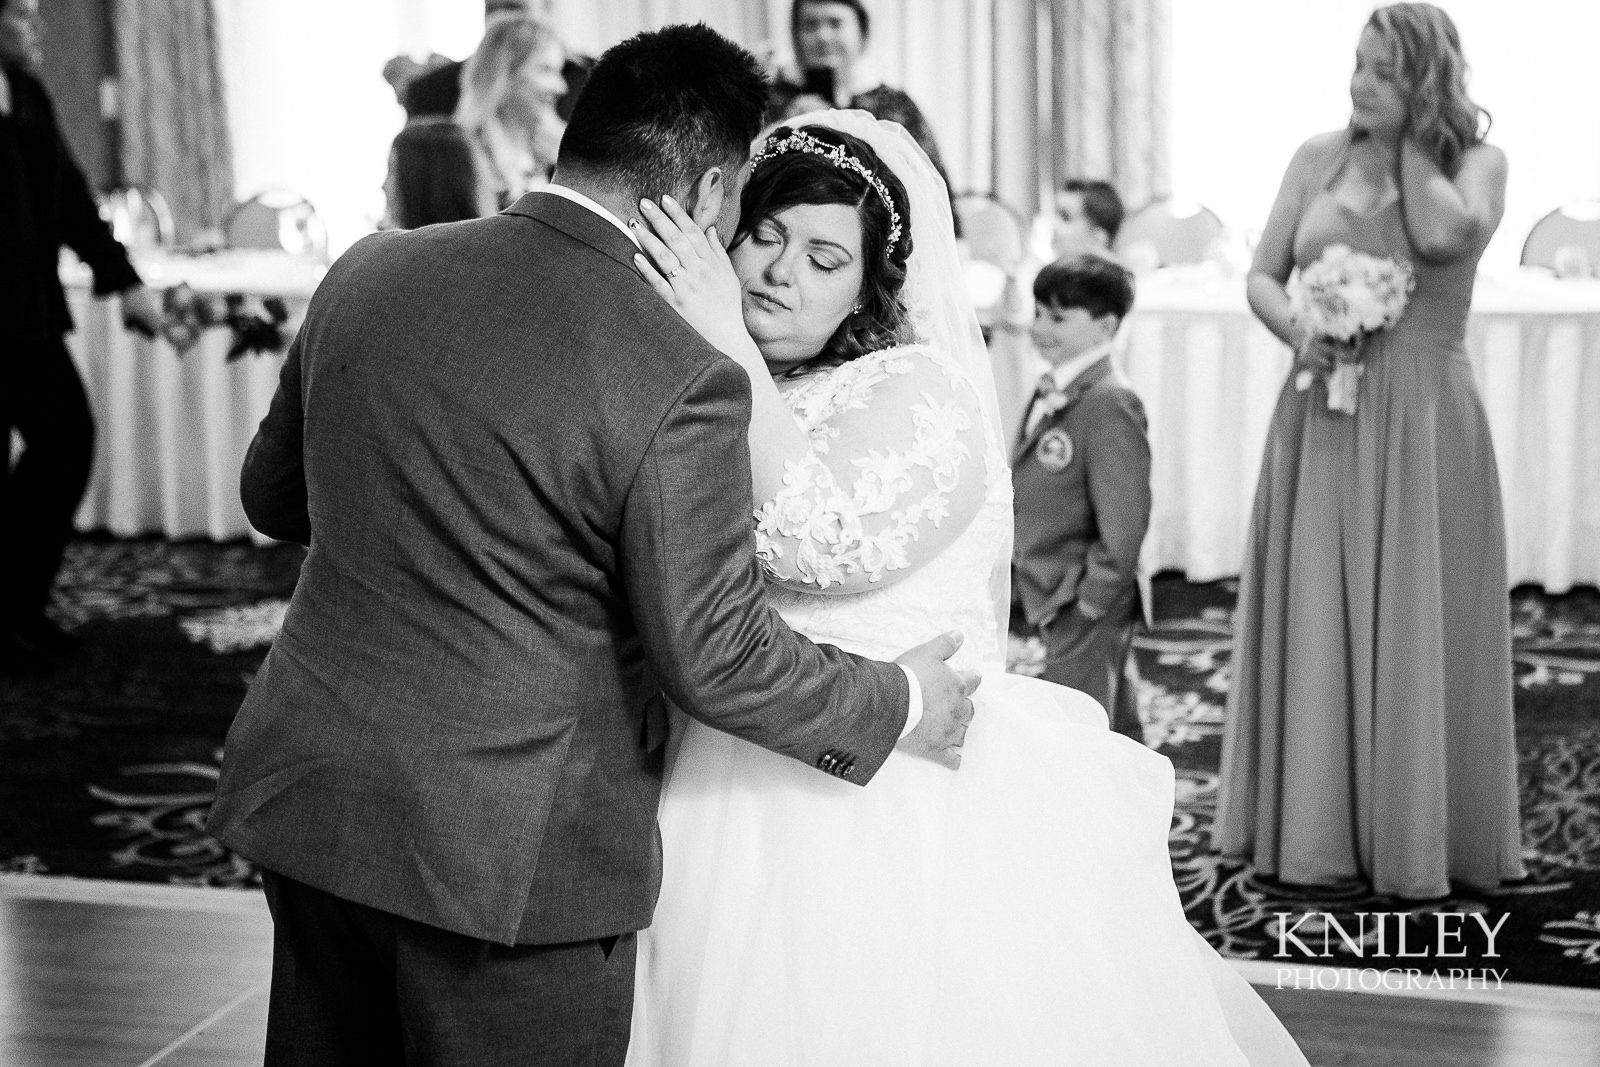 086 - Woodcliff Hotel - Rochester NY wedding photo - Kniley Photography.jpg